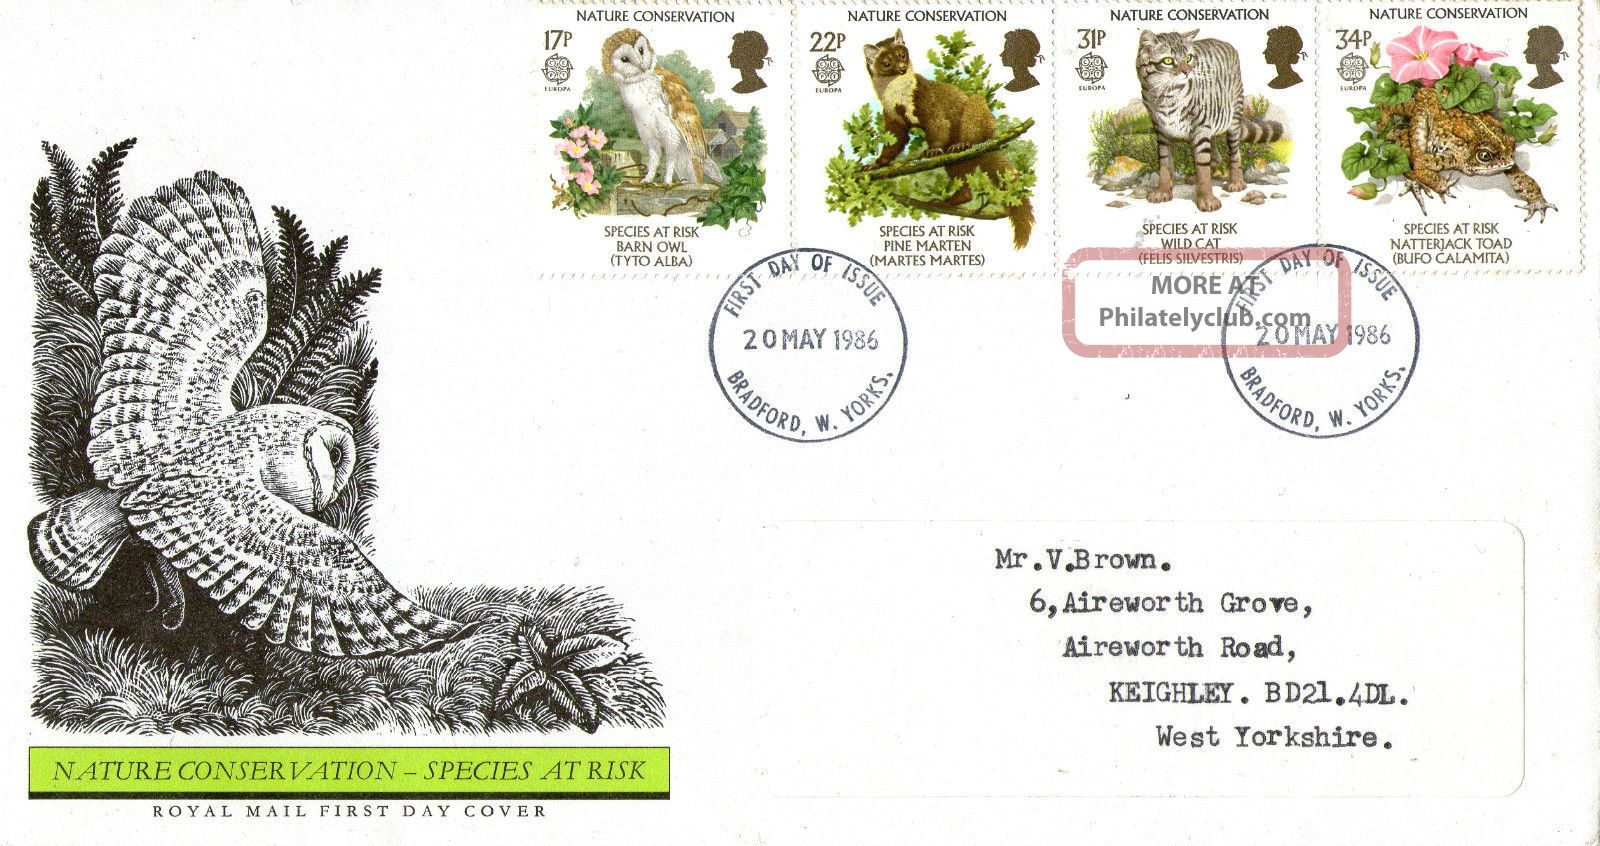 20 May 1986 Nature Conservation Royal Mail First Day Cover Bradford Fdi Animal Kingdom photo